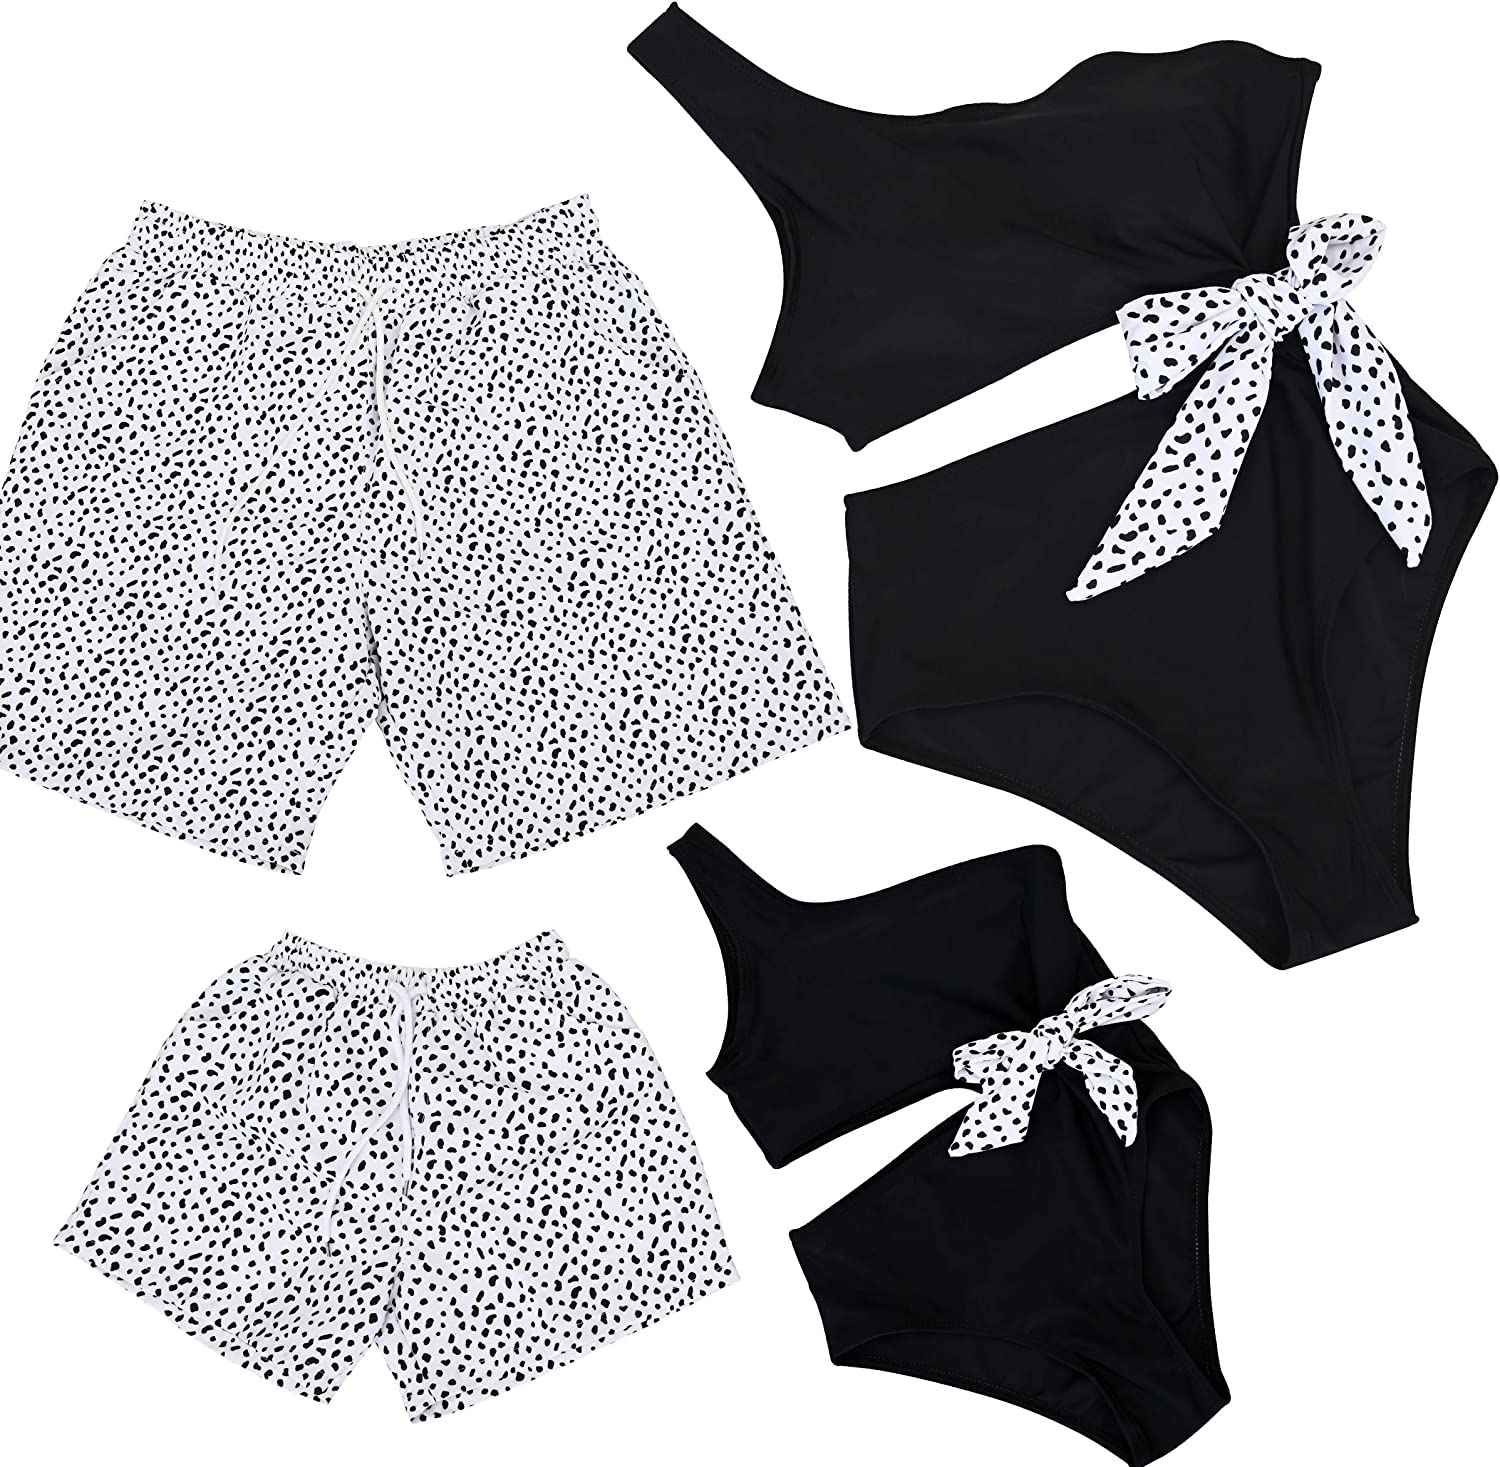 PURFEEL One Piece Family Matching Swimsuit Coulpes Swimwear Dad and Me Matching Shorts